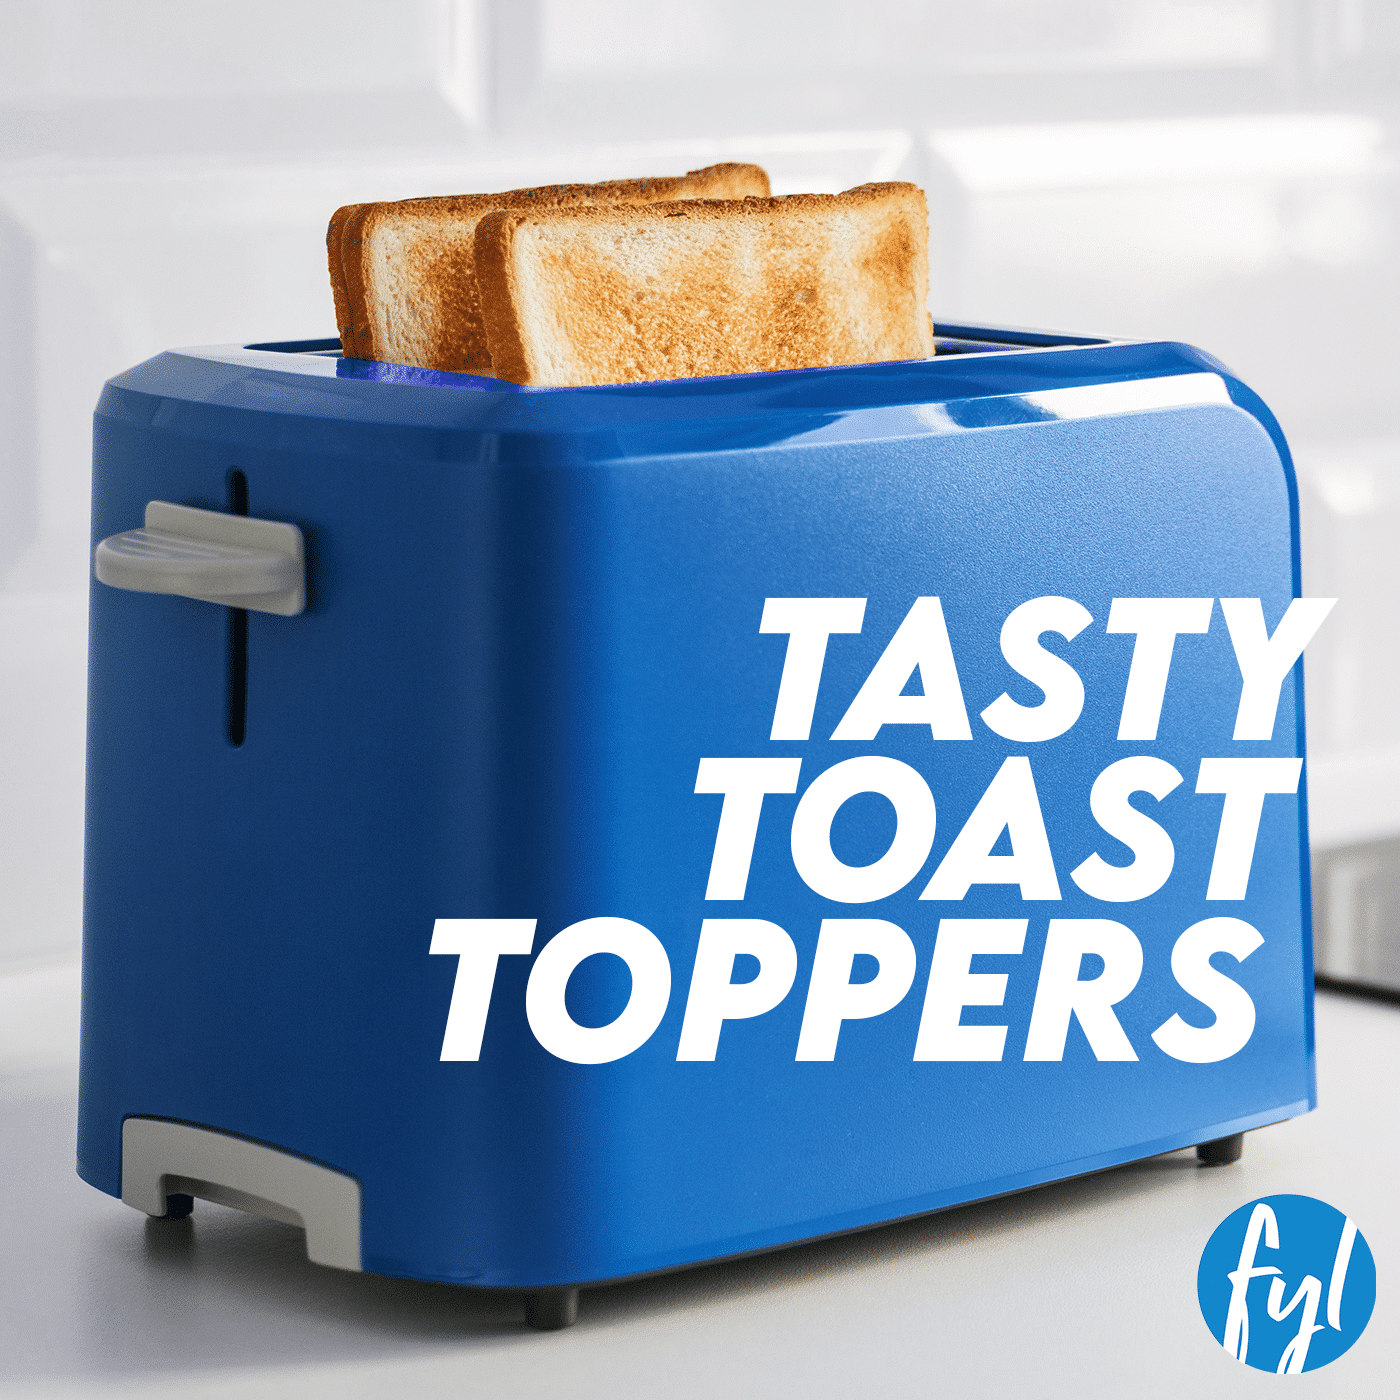 Tasty Toast Toppers